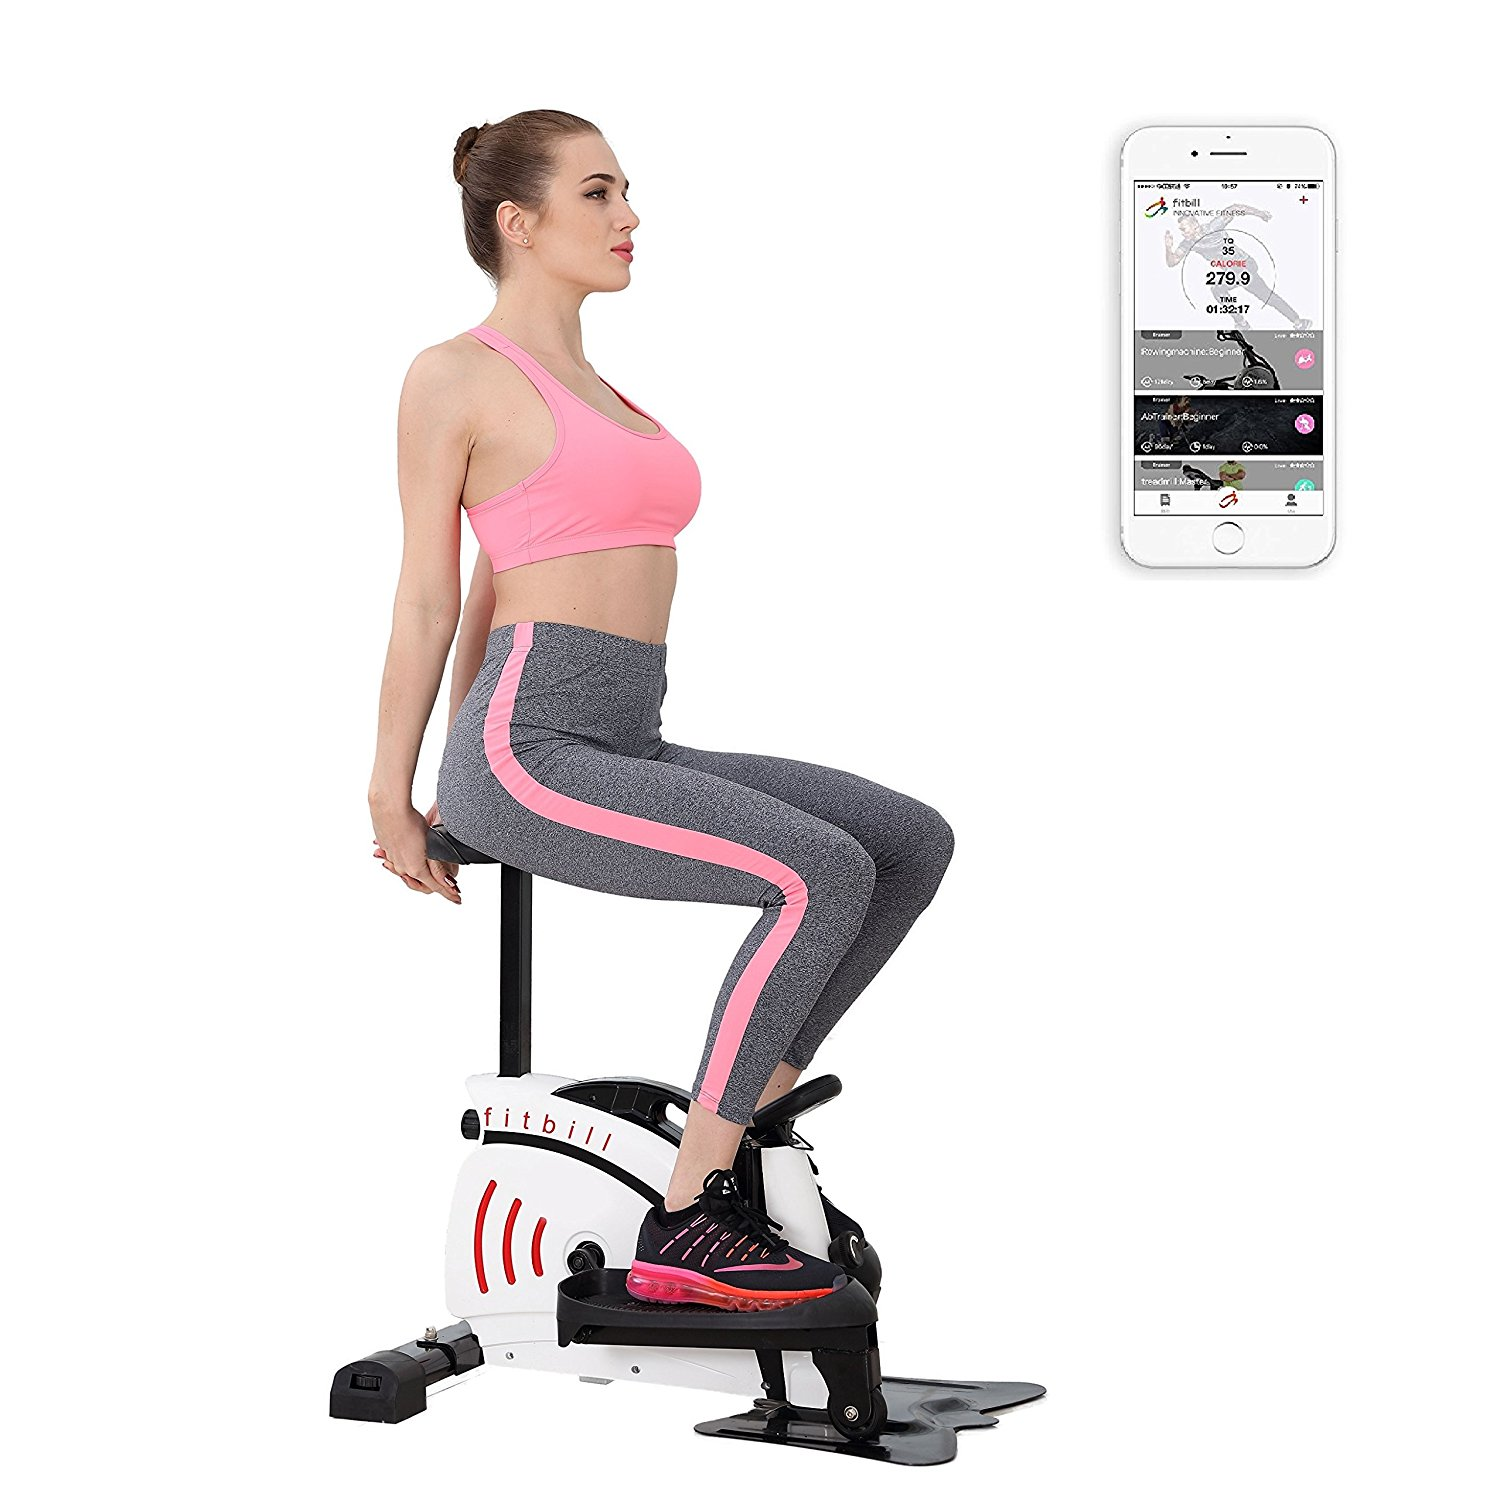 dp workout office home adjustable workstation standing com tabletop for treadmill w desk walking amazon machine height under goplus perfect electric